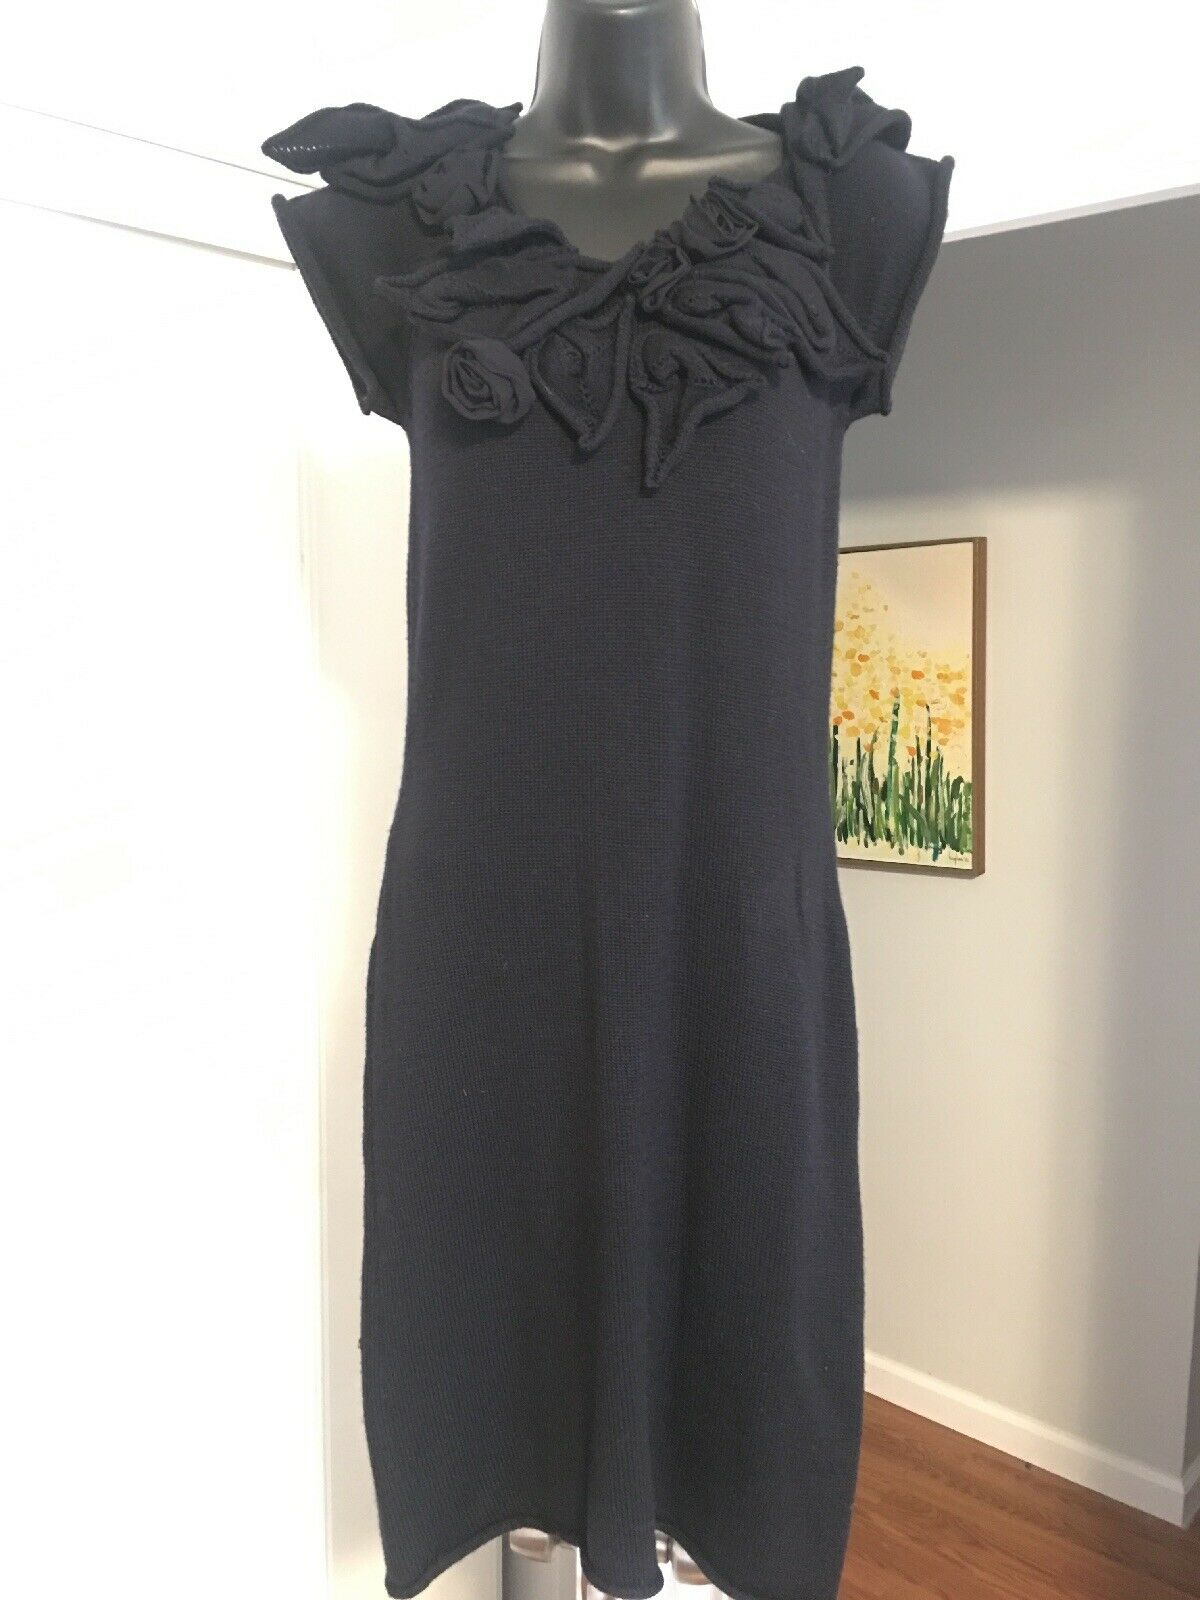 Adam Adam Lippes Layerot Embossed Embroiderot  Perfect schwarz Dress SZ S R2